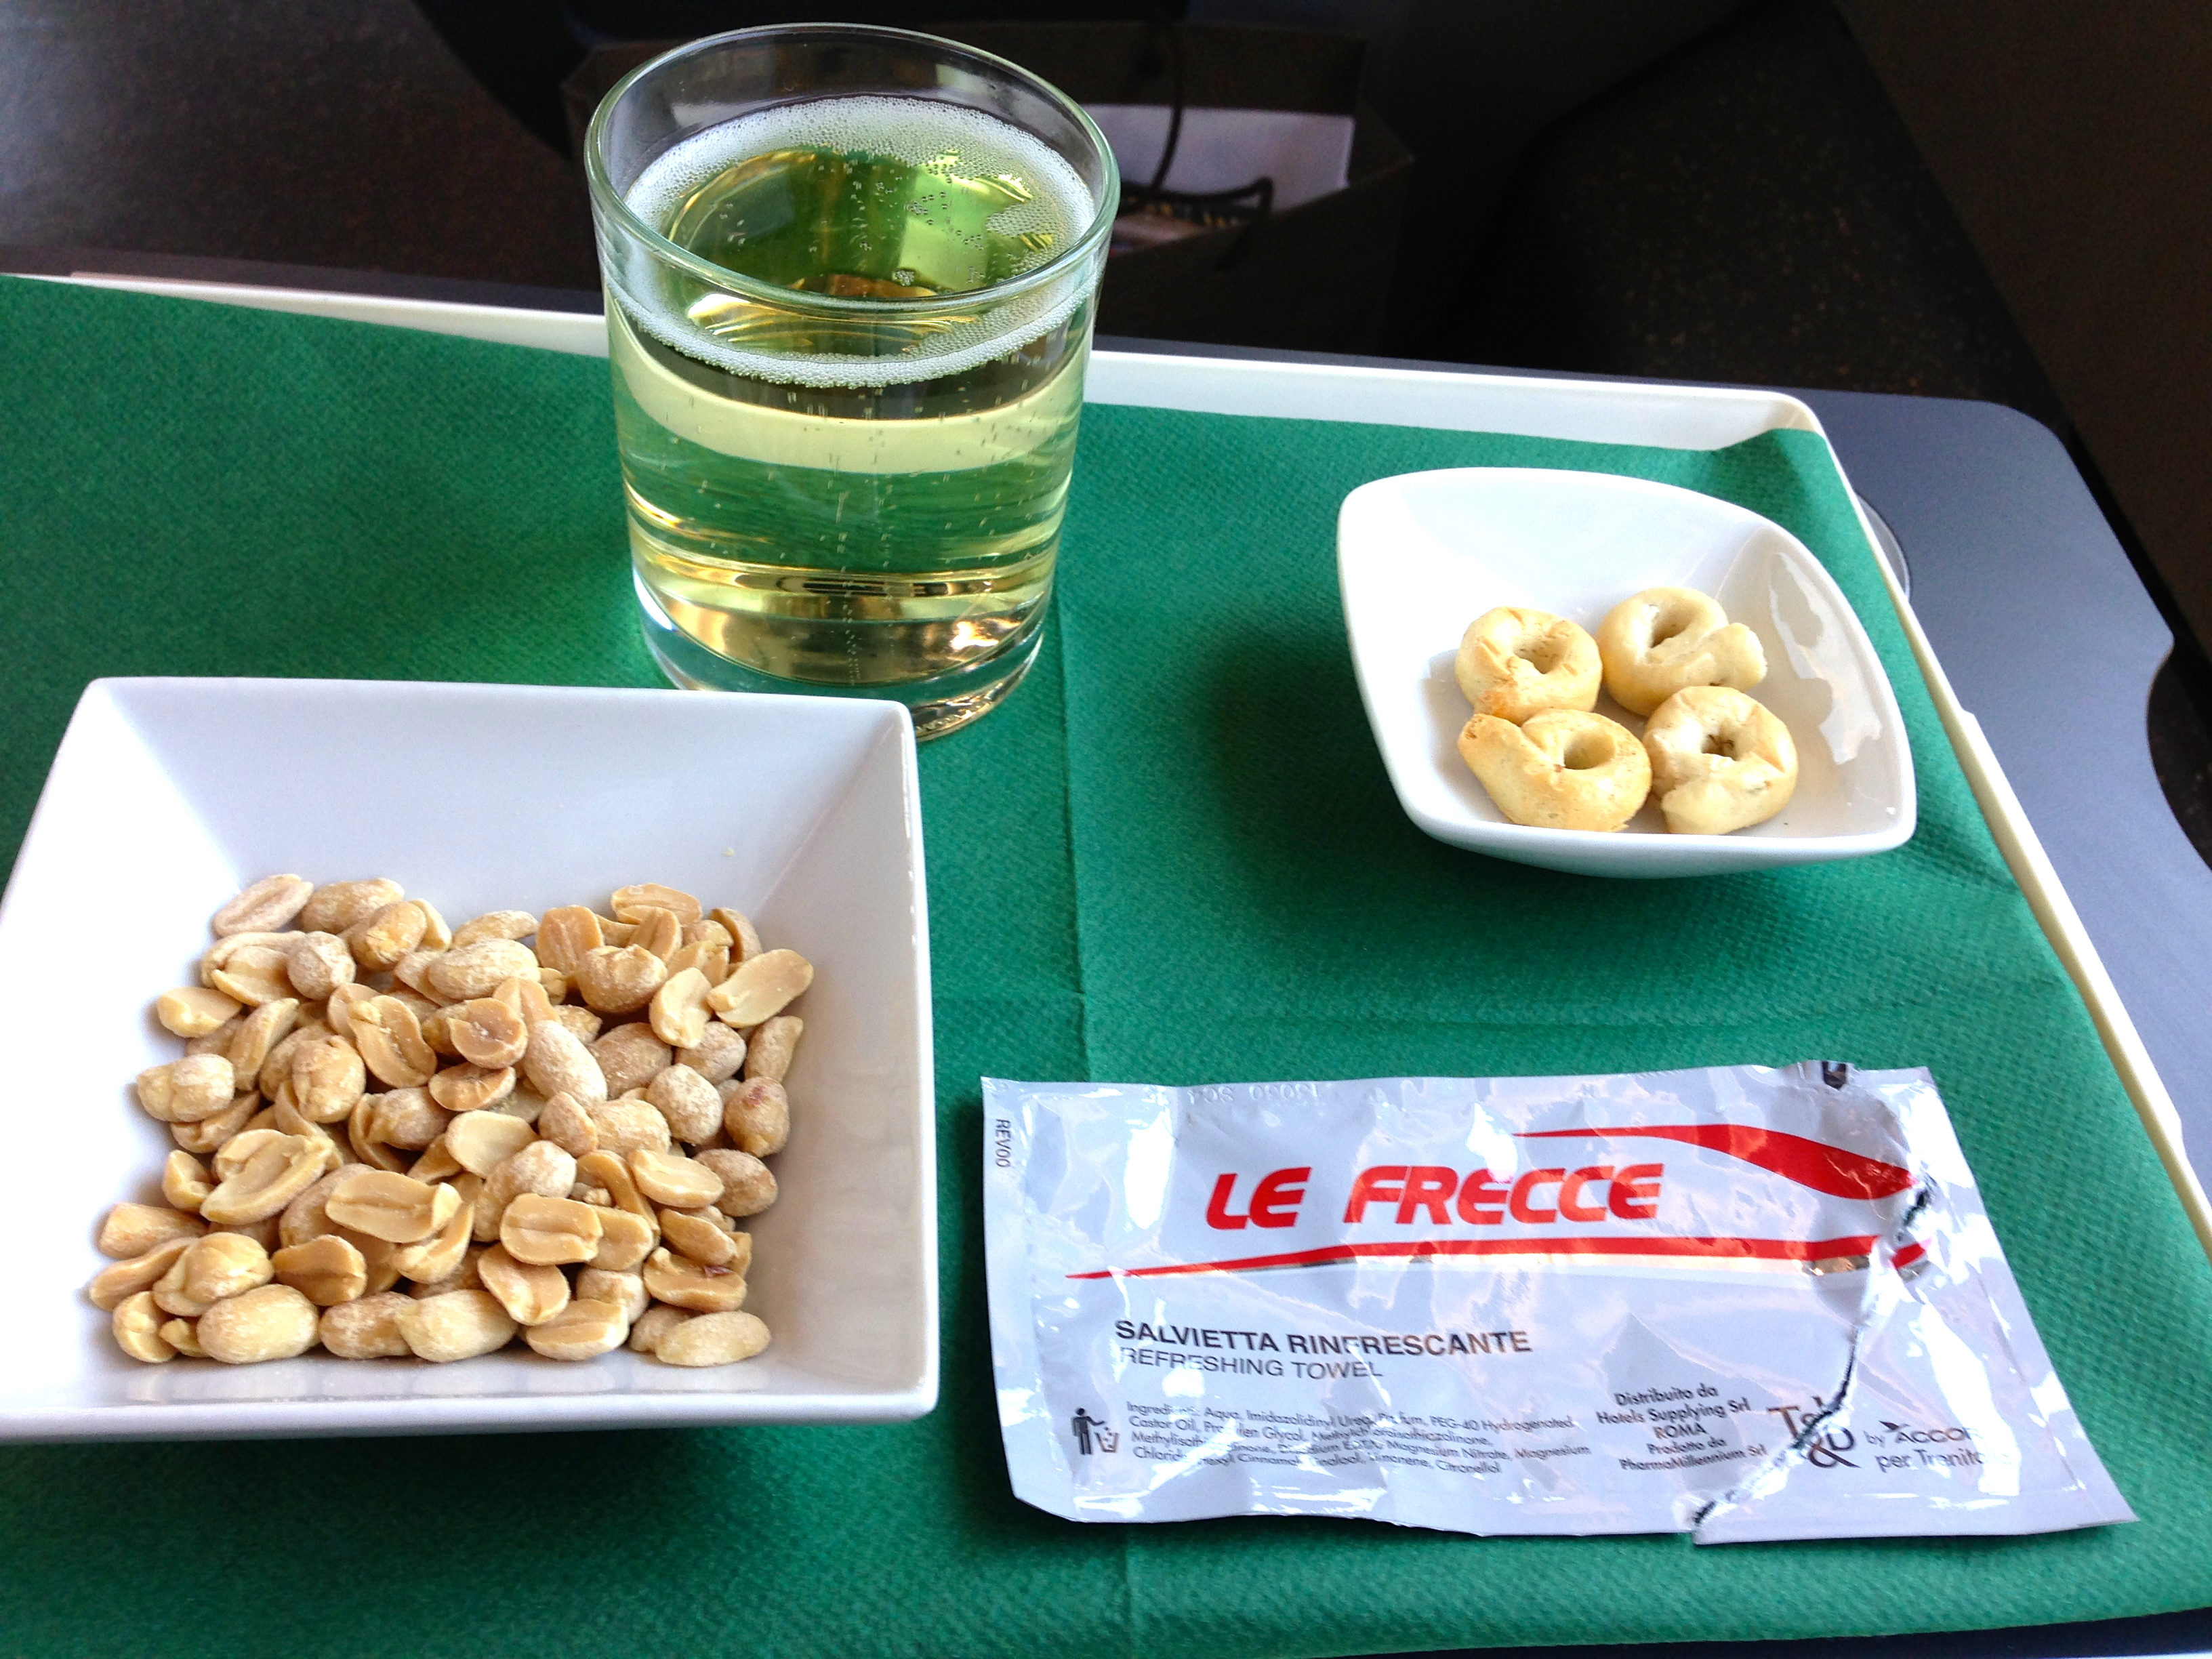 Trenitalia Frecciarossa Executive Class Snack